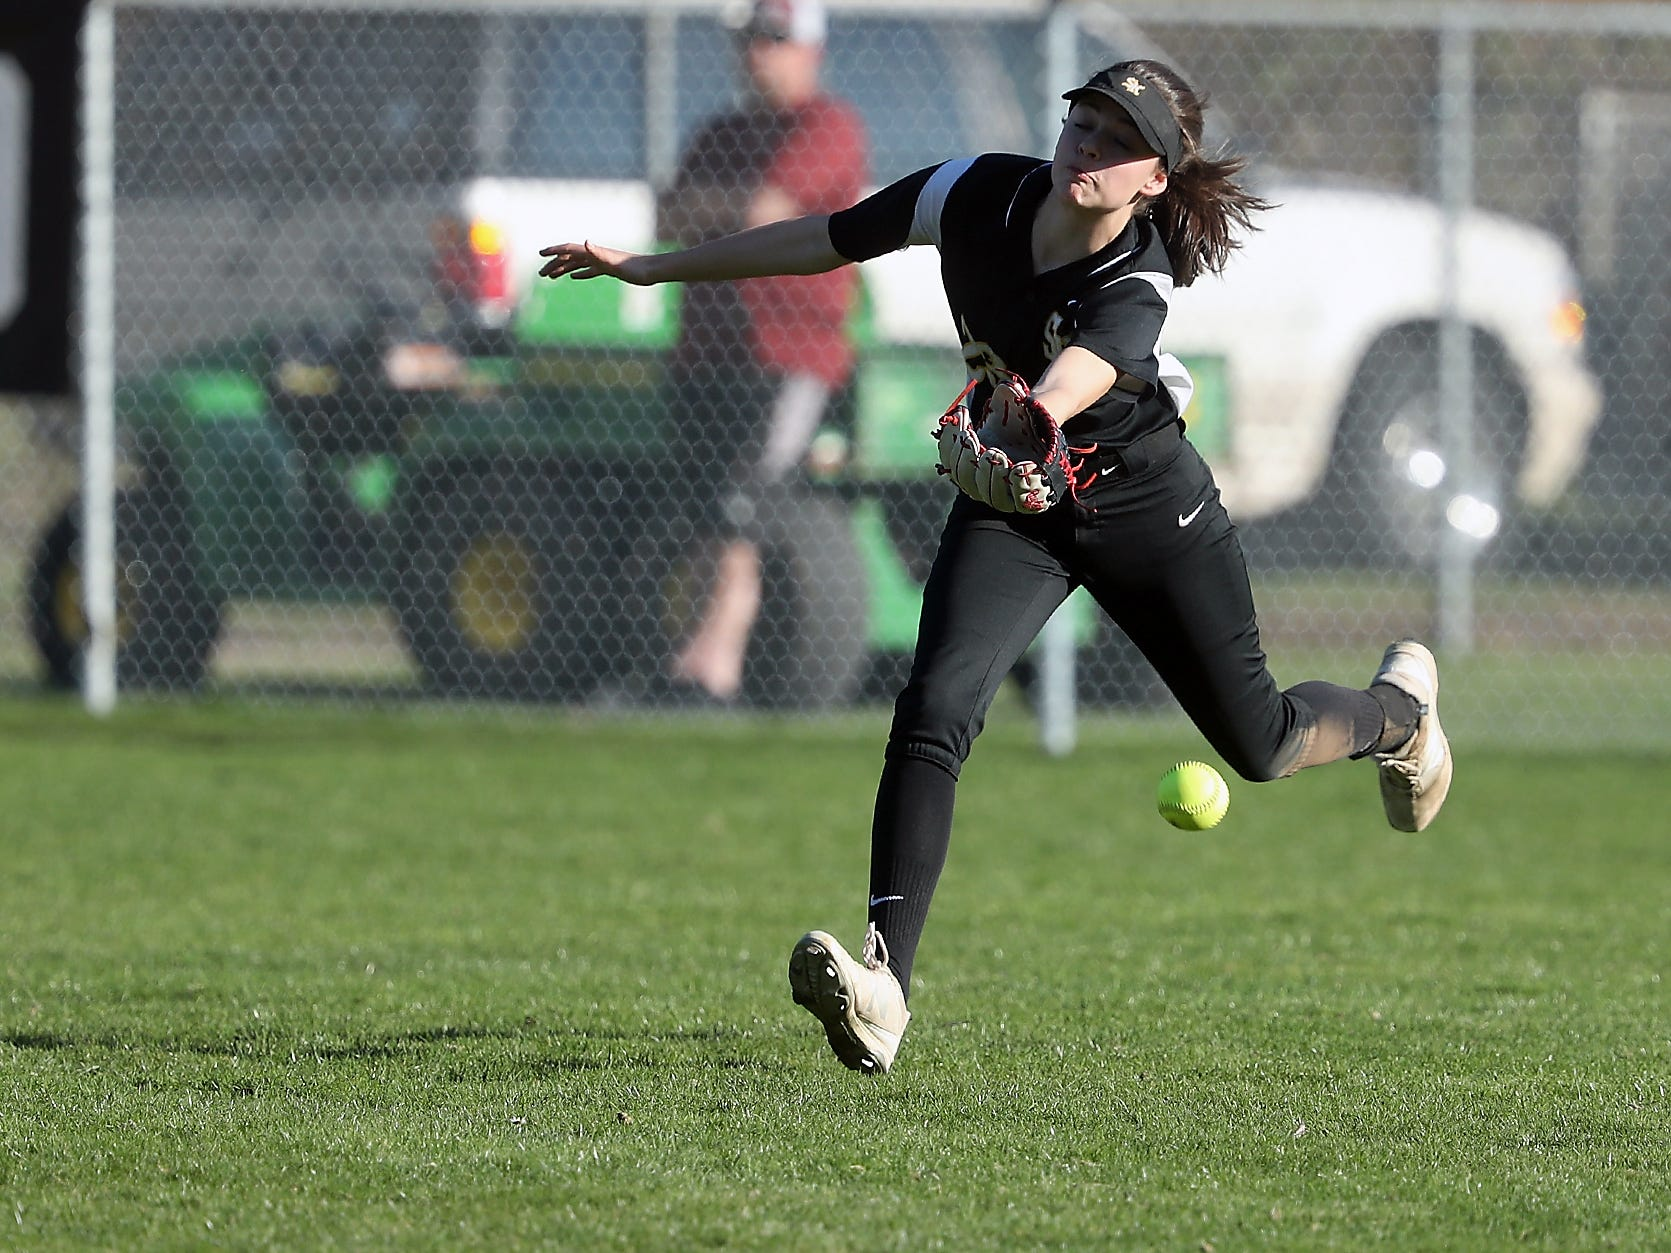 South Kitsap's Aubrey Faucett misses a fly ball against Puyallup on Tuesday, March 26, 2019.